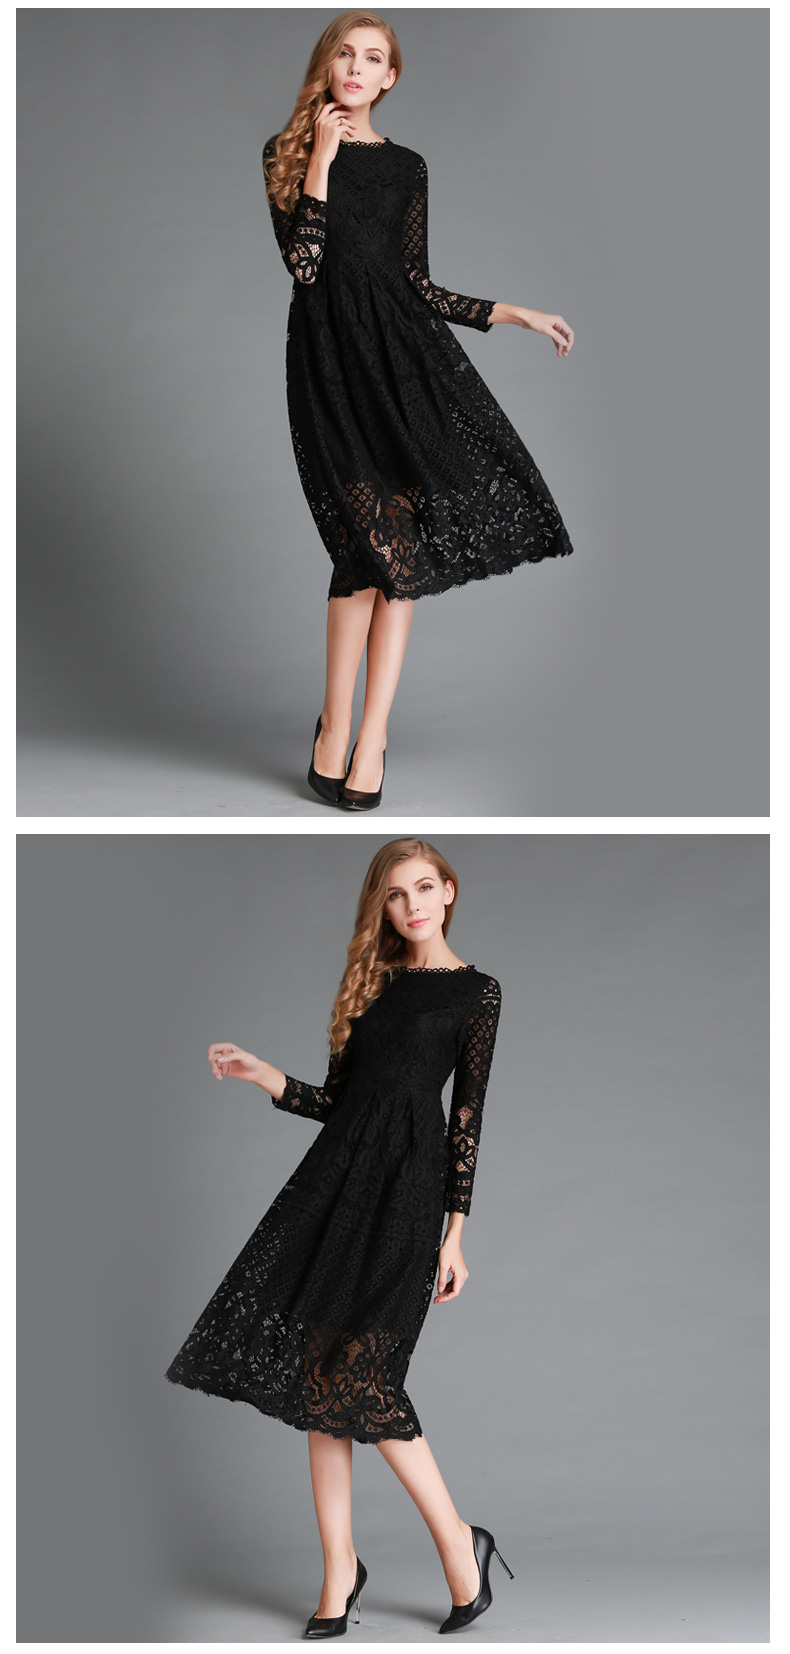 New European 2017 Spring Womens Lace Hollow Out Long Dresses Femme Casual Clothing Women Sexy Slim Party Dress L13